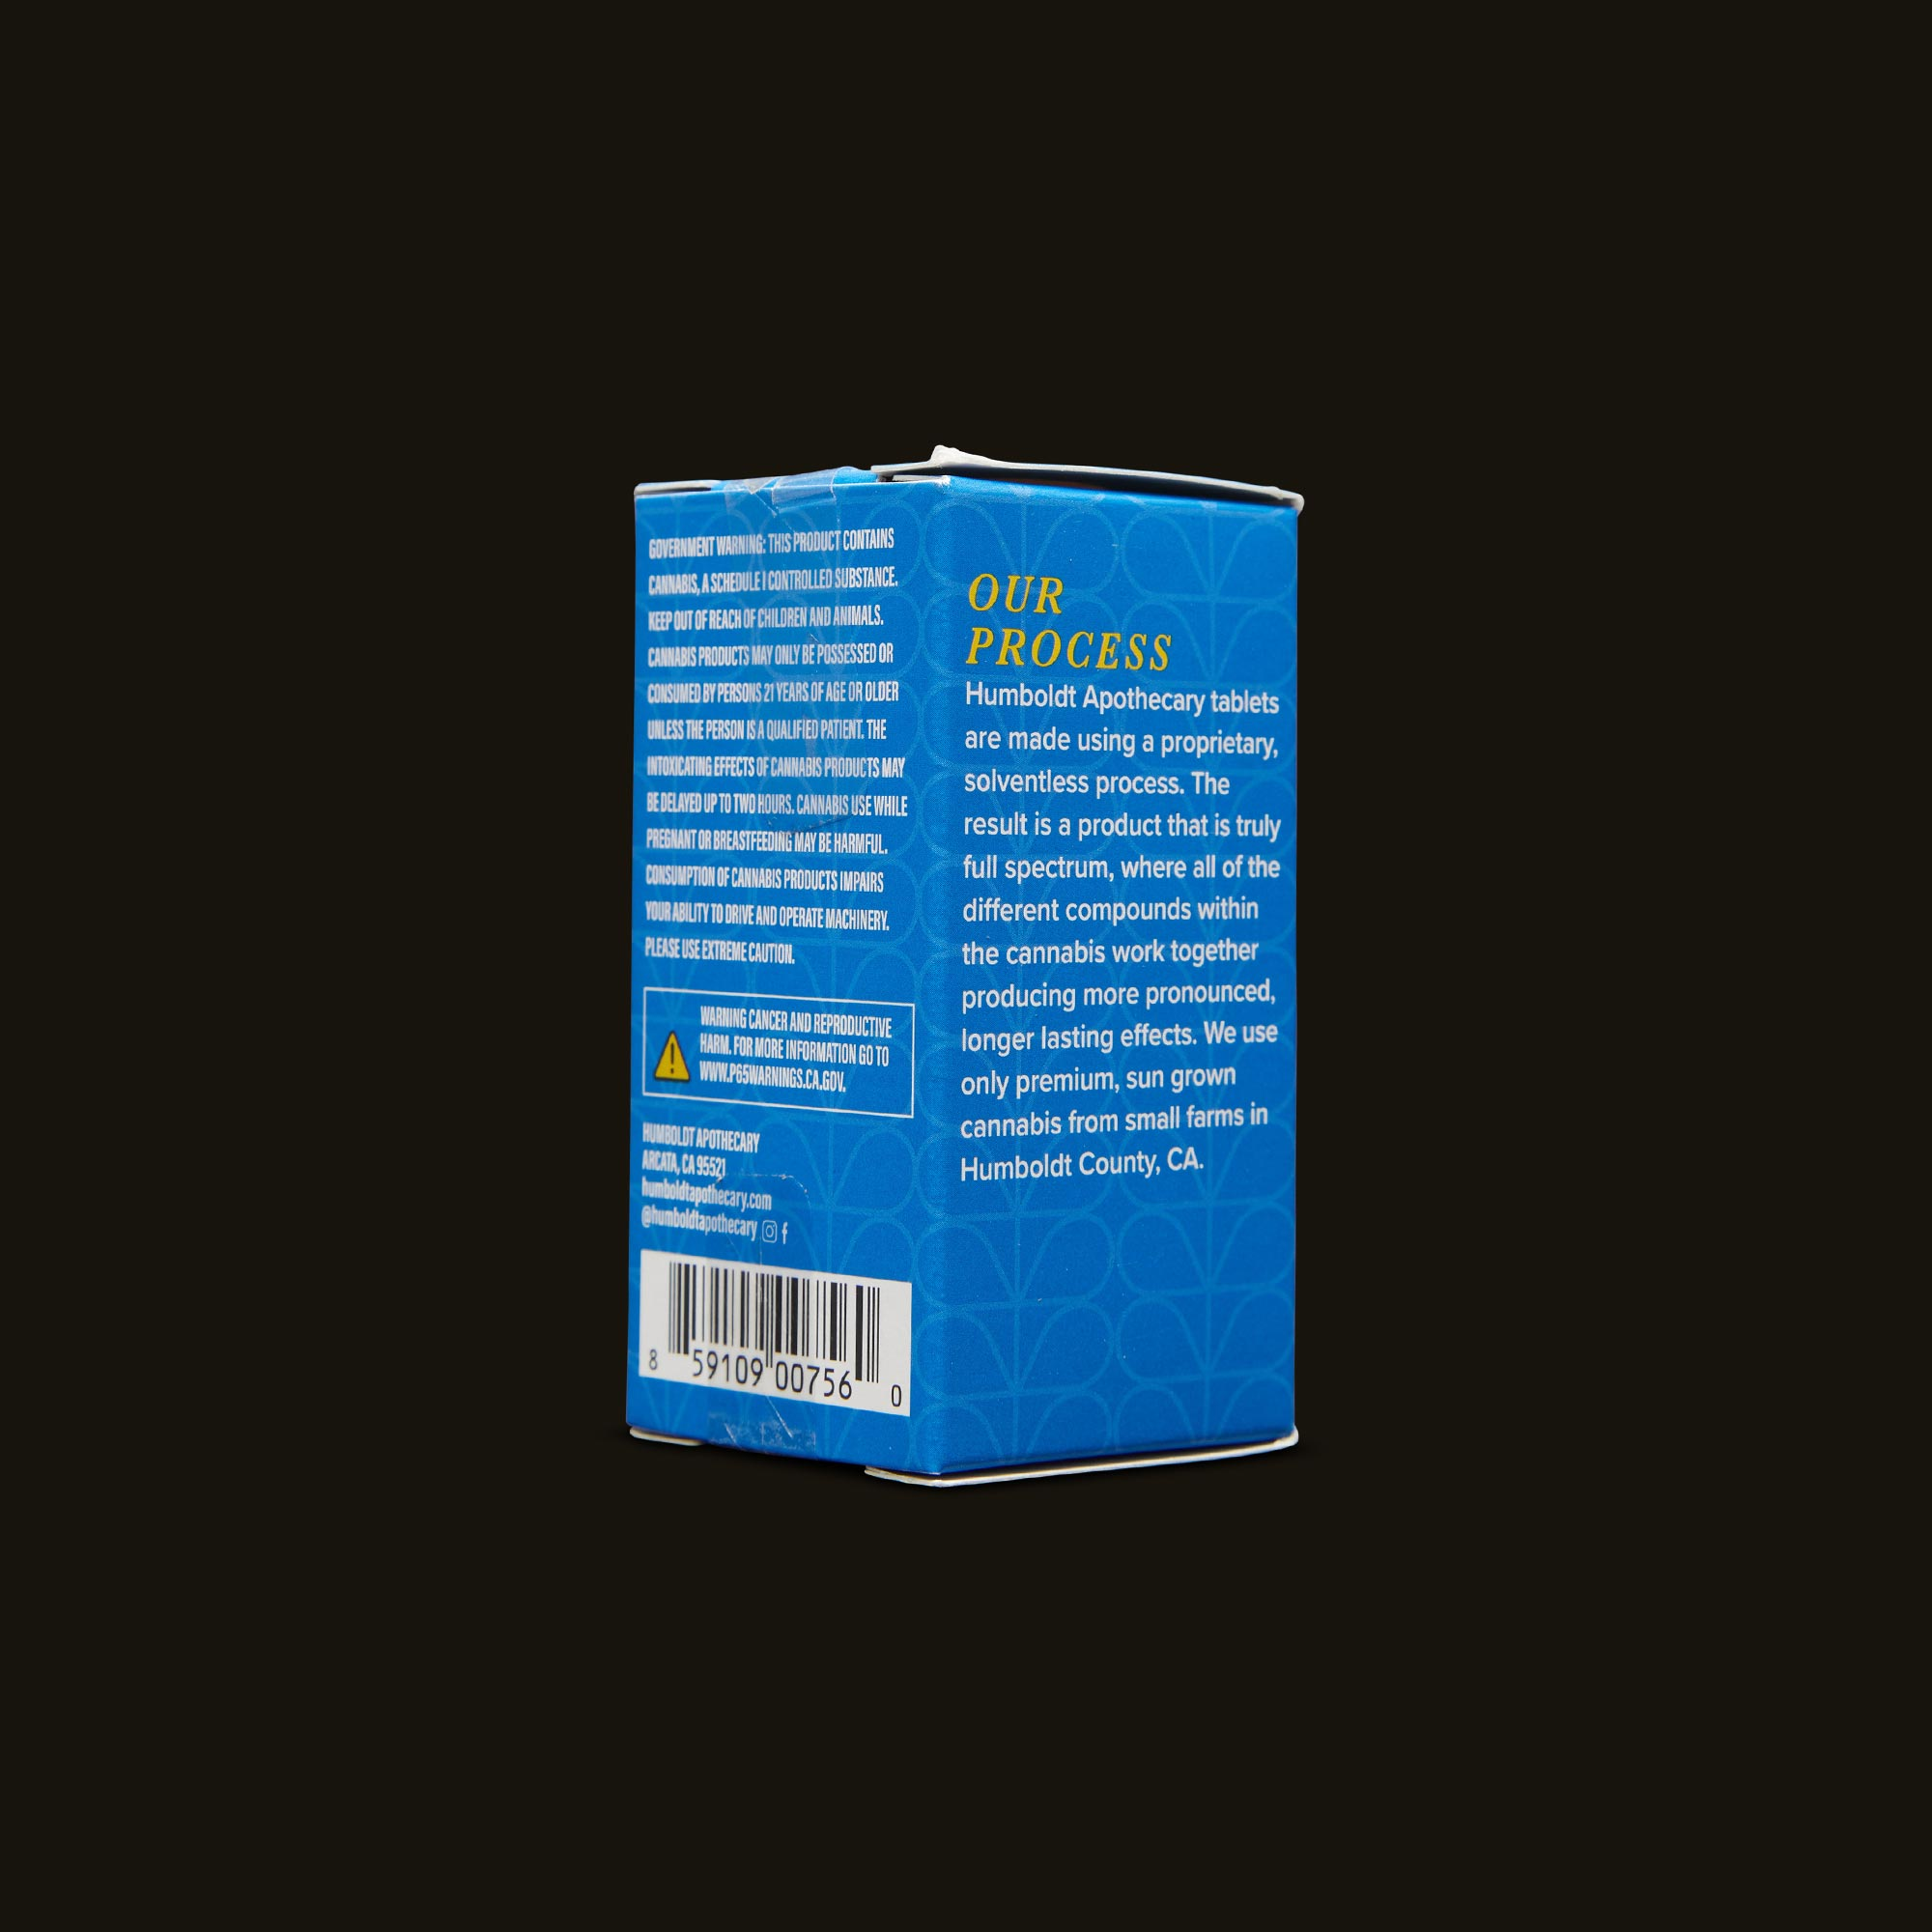 Humboldt Apothecary Indica Tablets Back Packaging